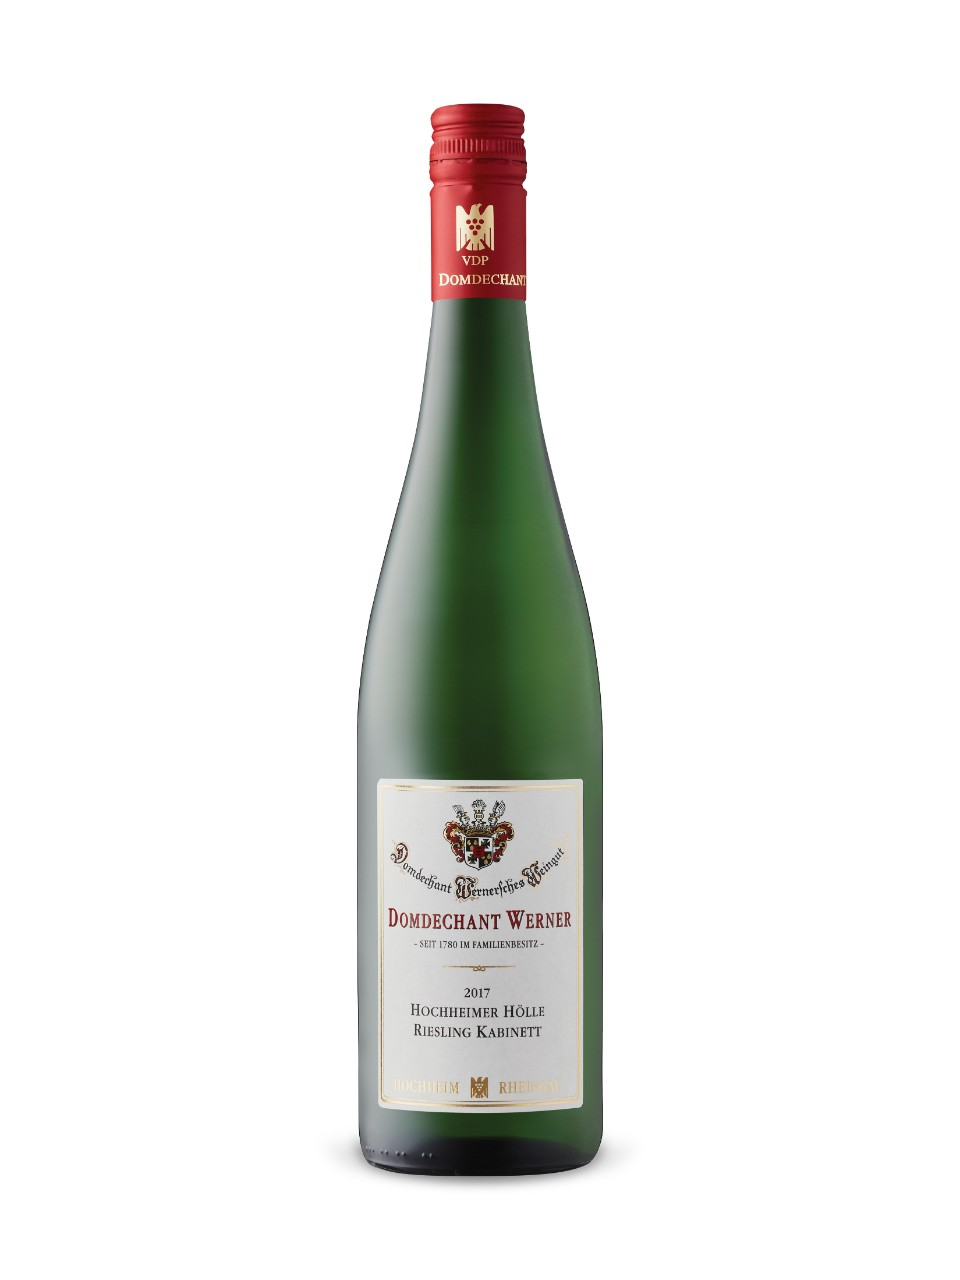 Image for Domdechant Werner Hochheimer Riesling Kabinett 2017 from LCBO